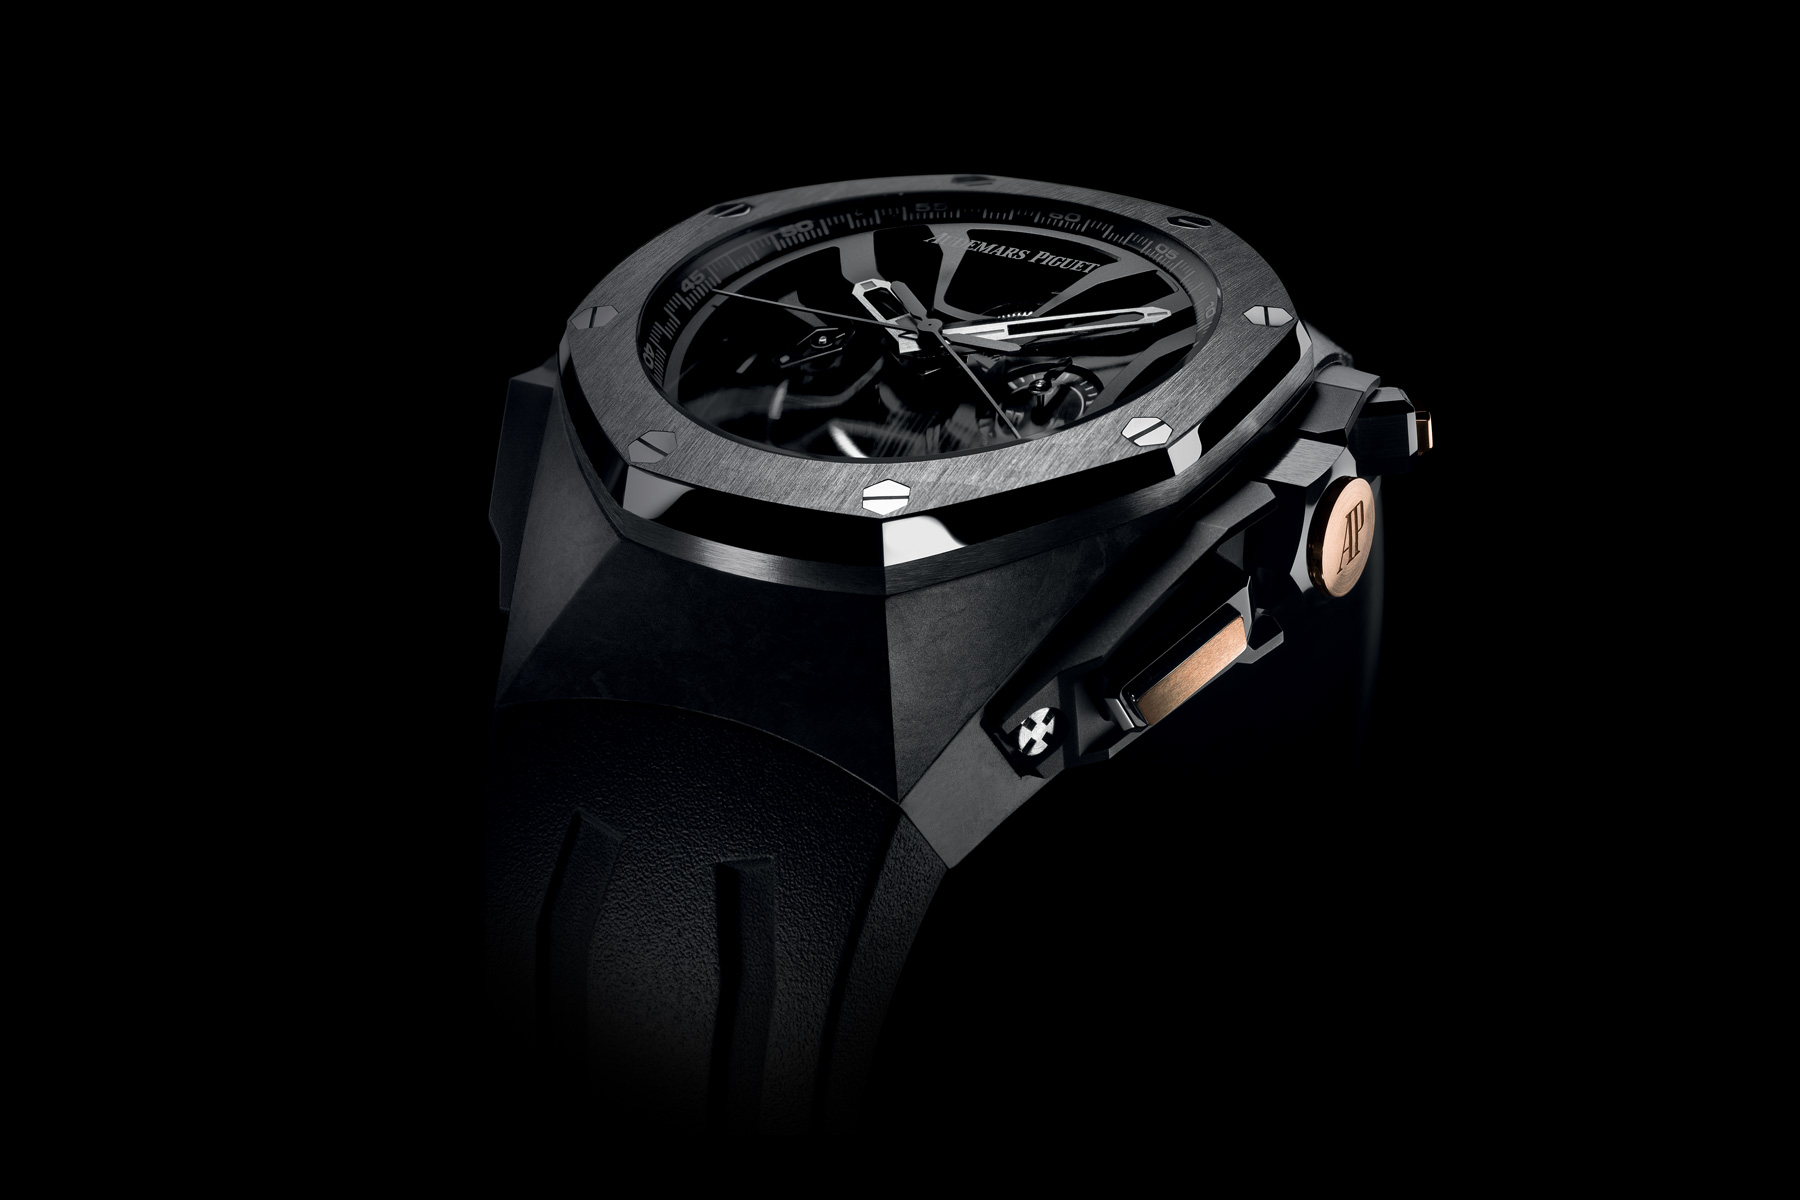 Audemars Piguet Royal Oak Concept Laptimer Michael Schumacher replica